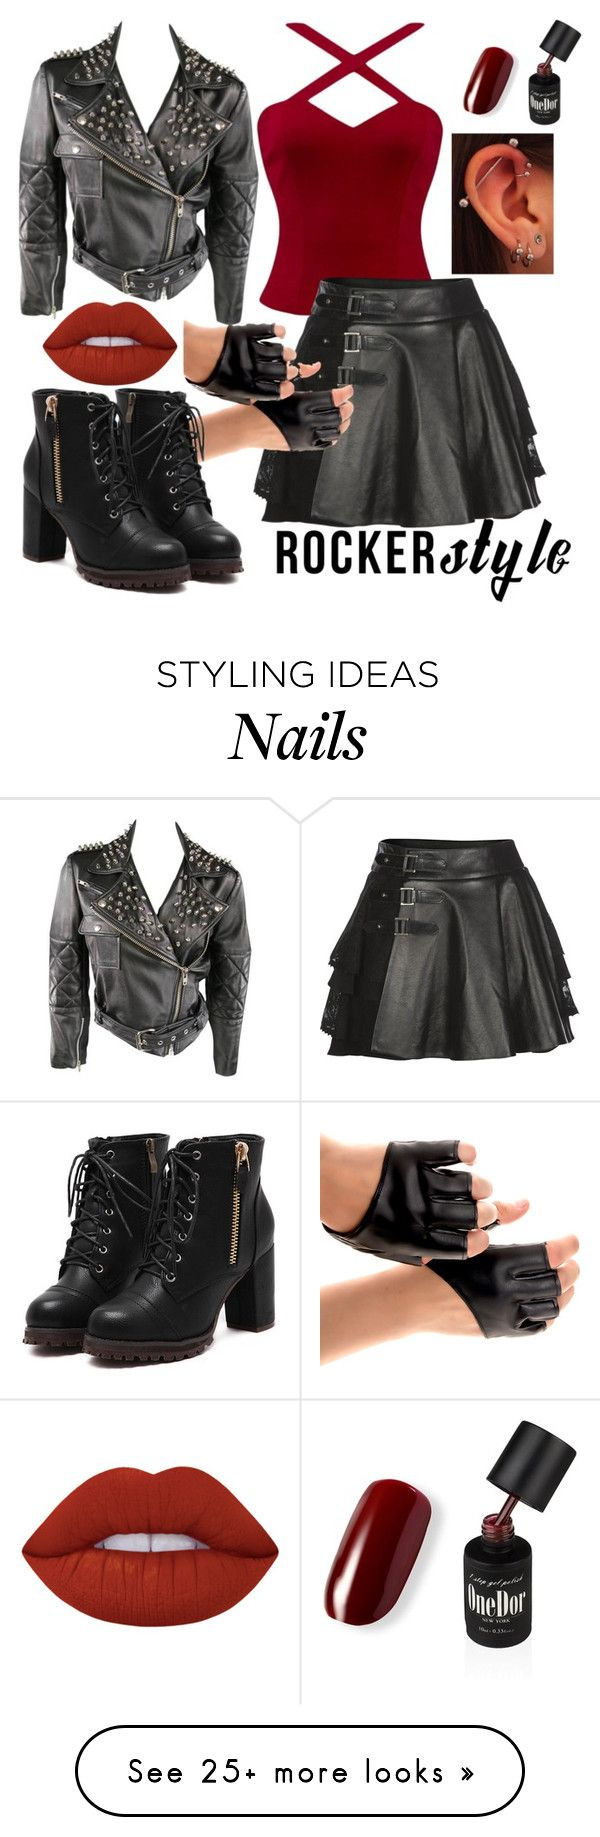 """Rocker Style"" by eule001 on Polyvore featuring Mairi Mcdonald, Lime Crime, rockerchic and rockerstyle"